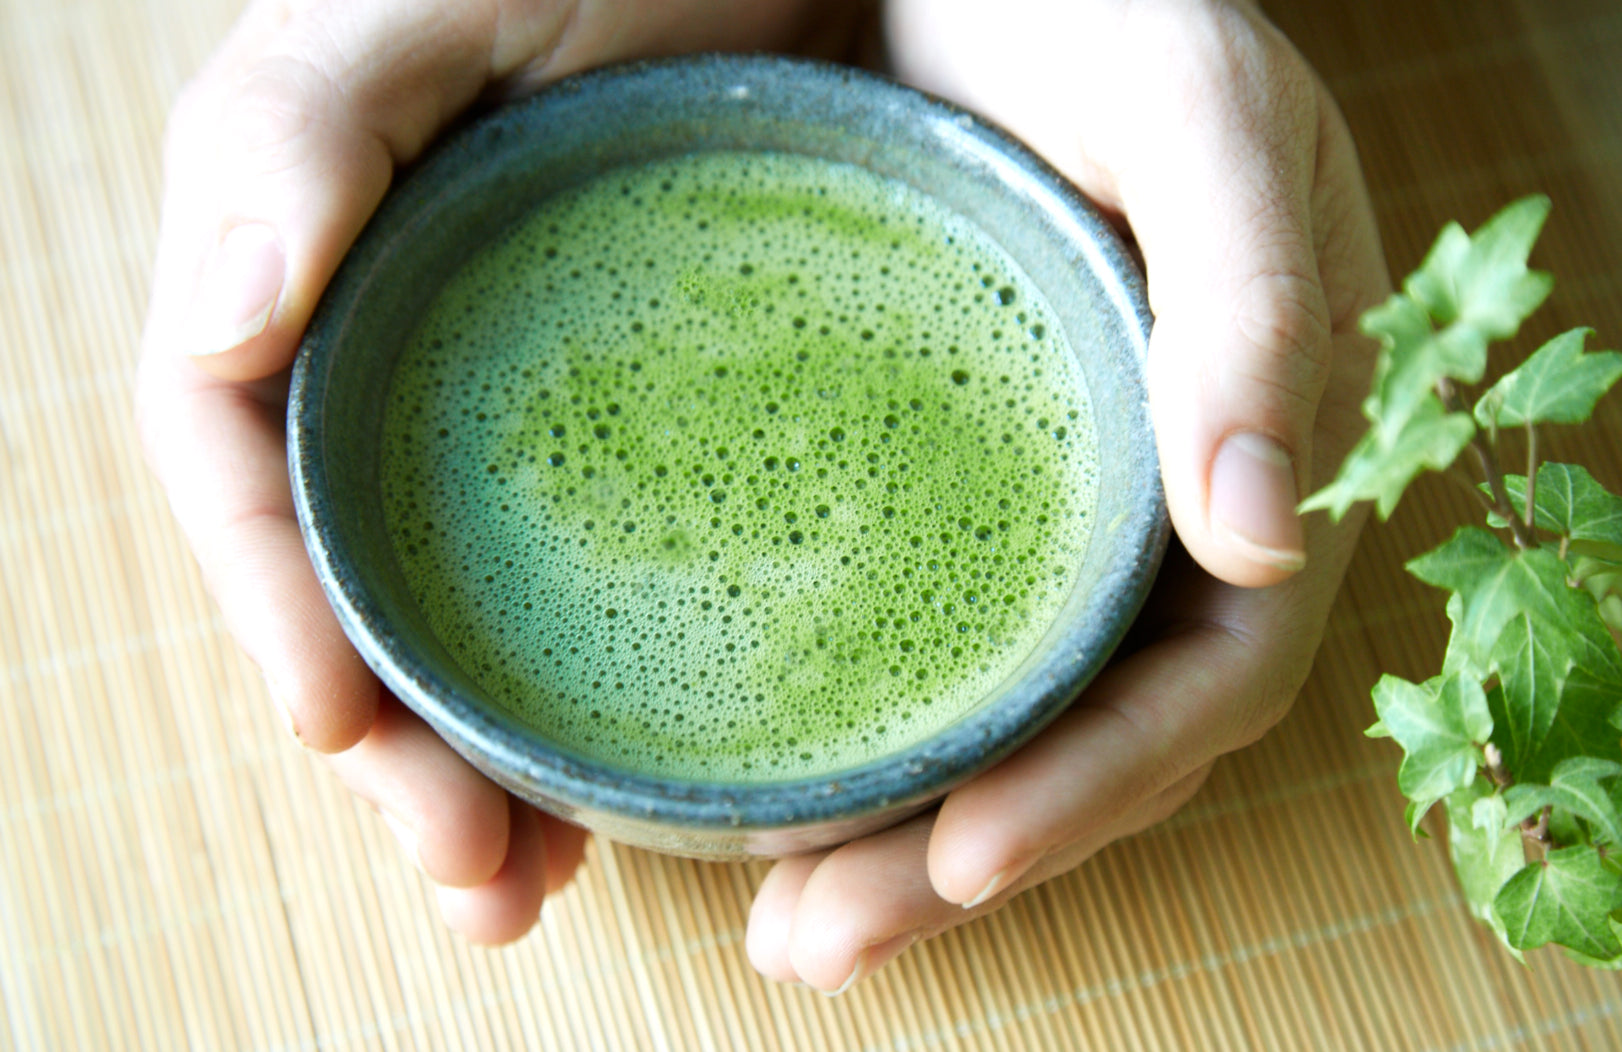 Caffeine in matcha: Will matcha keep me up all night?